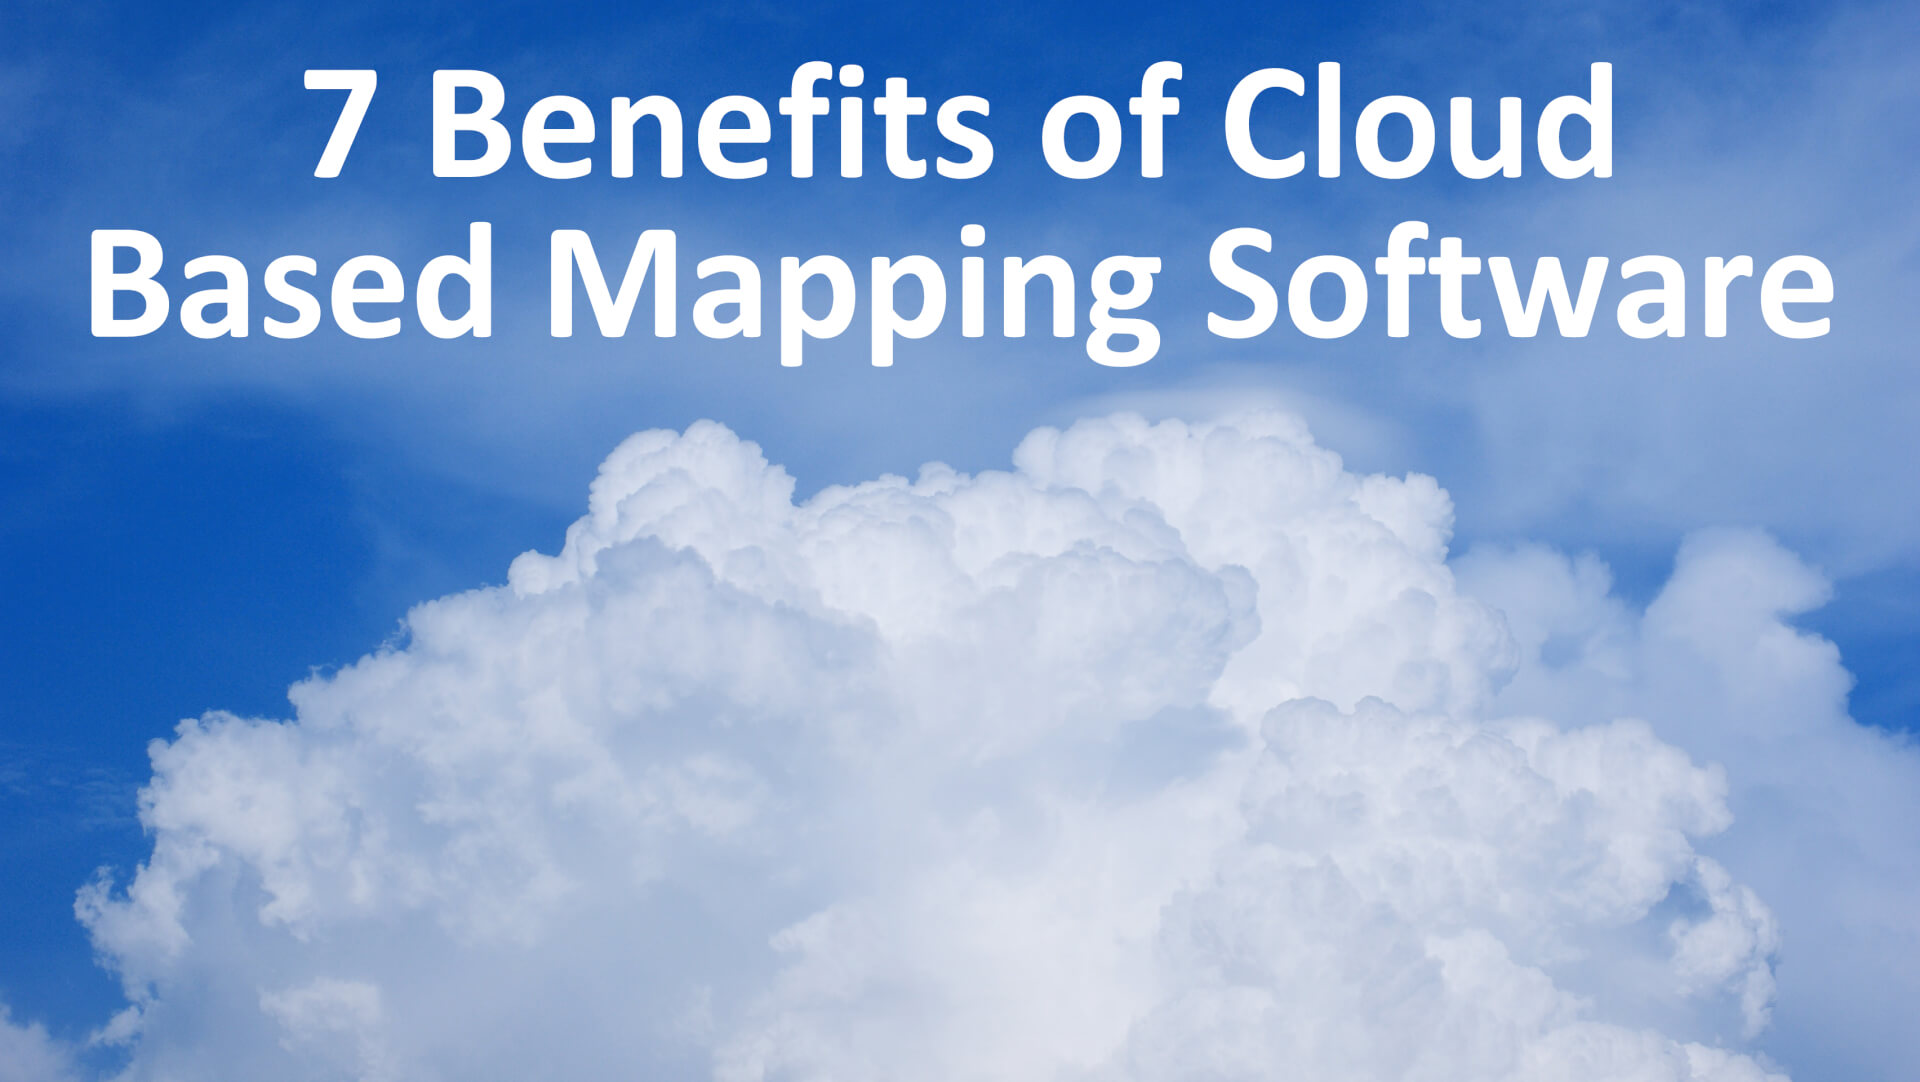 7 benefits of cloud mapping software